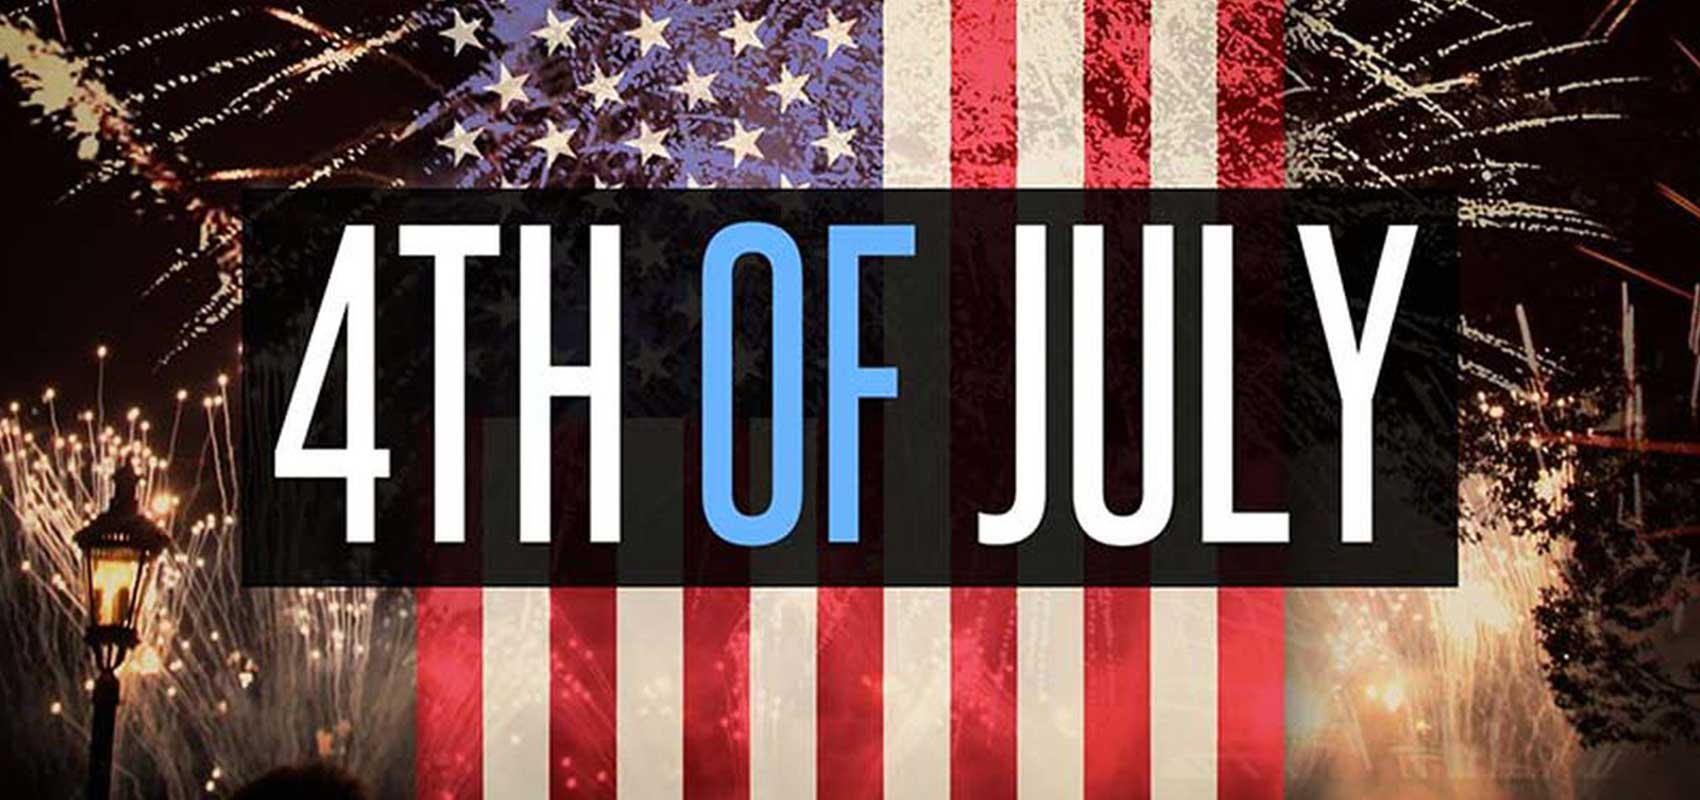 4th of July Community Schedule Image